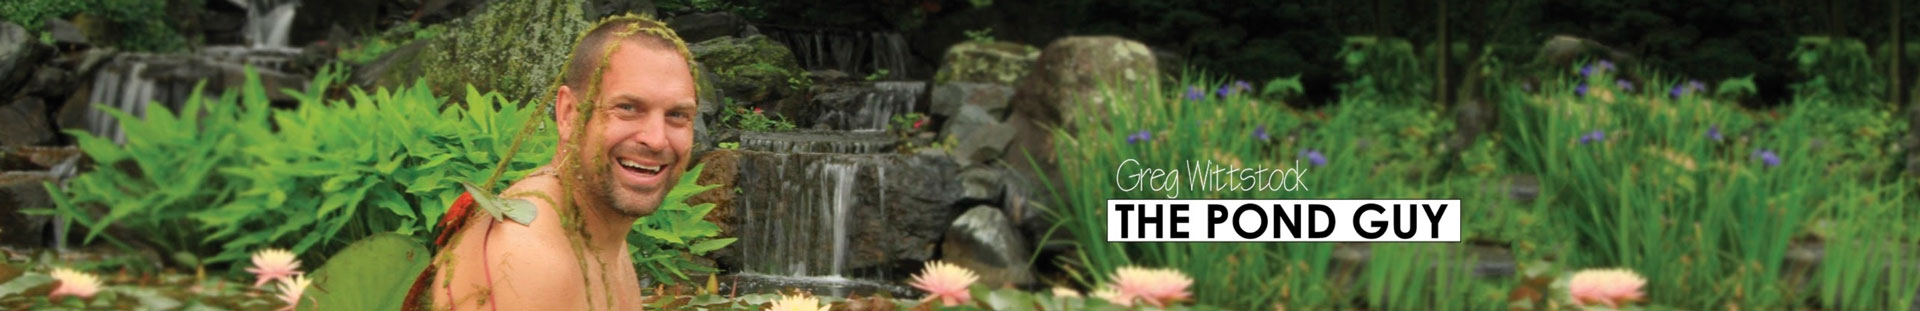 Greg Wittstock the Pond Guy Youtube Channel | Aquascape Water Features | Tussey Landscaping